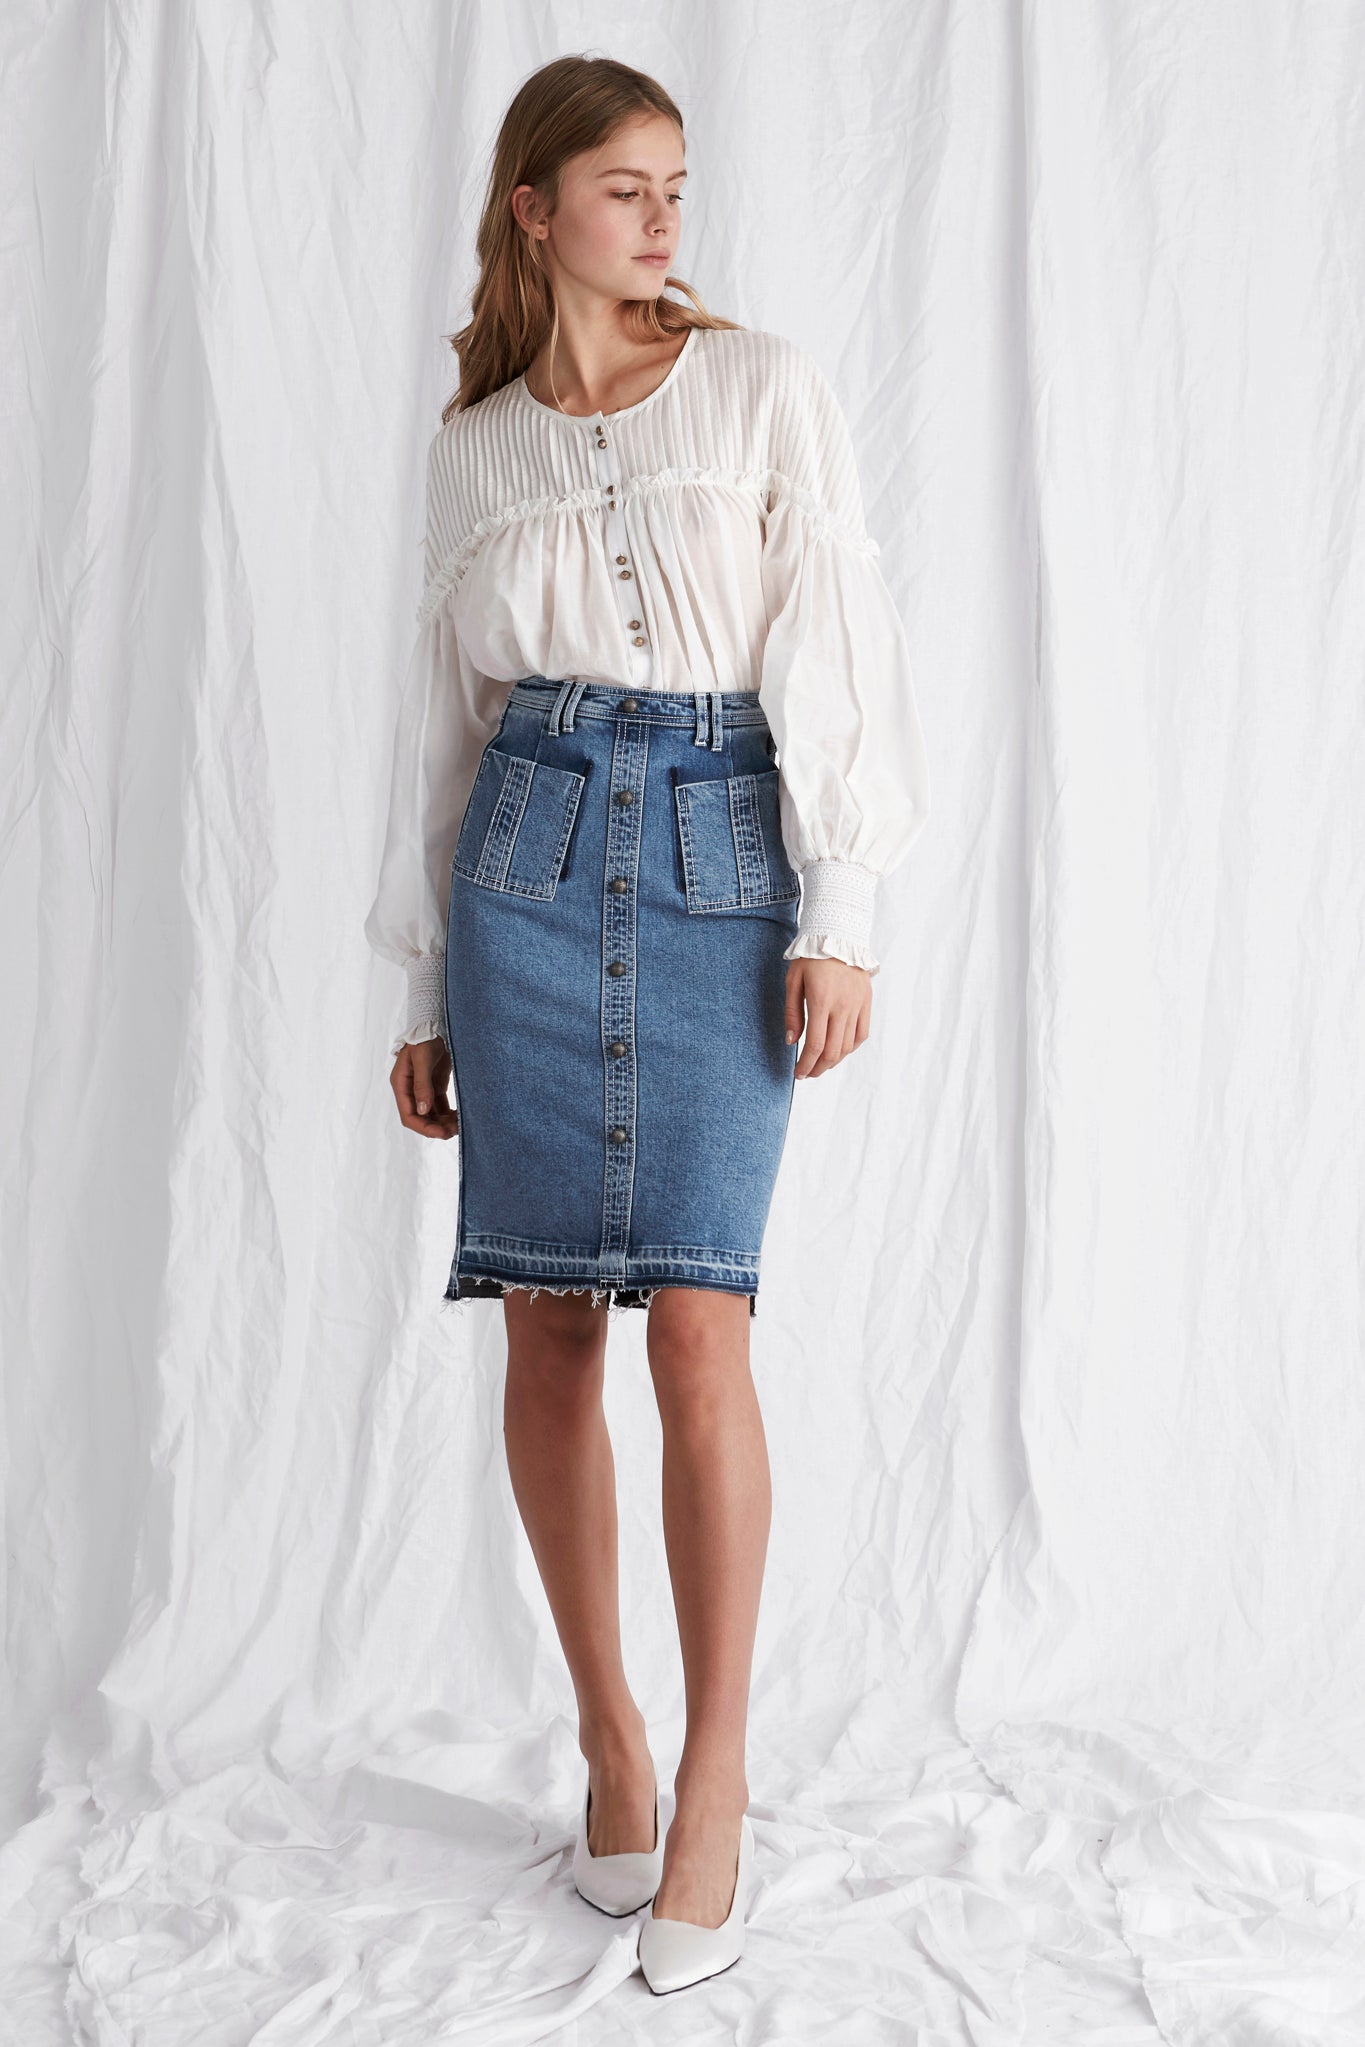 Schiffer Denim Midi Skirt Outfit View